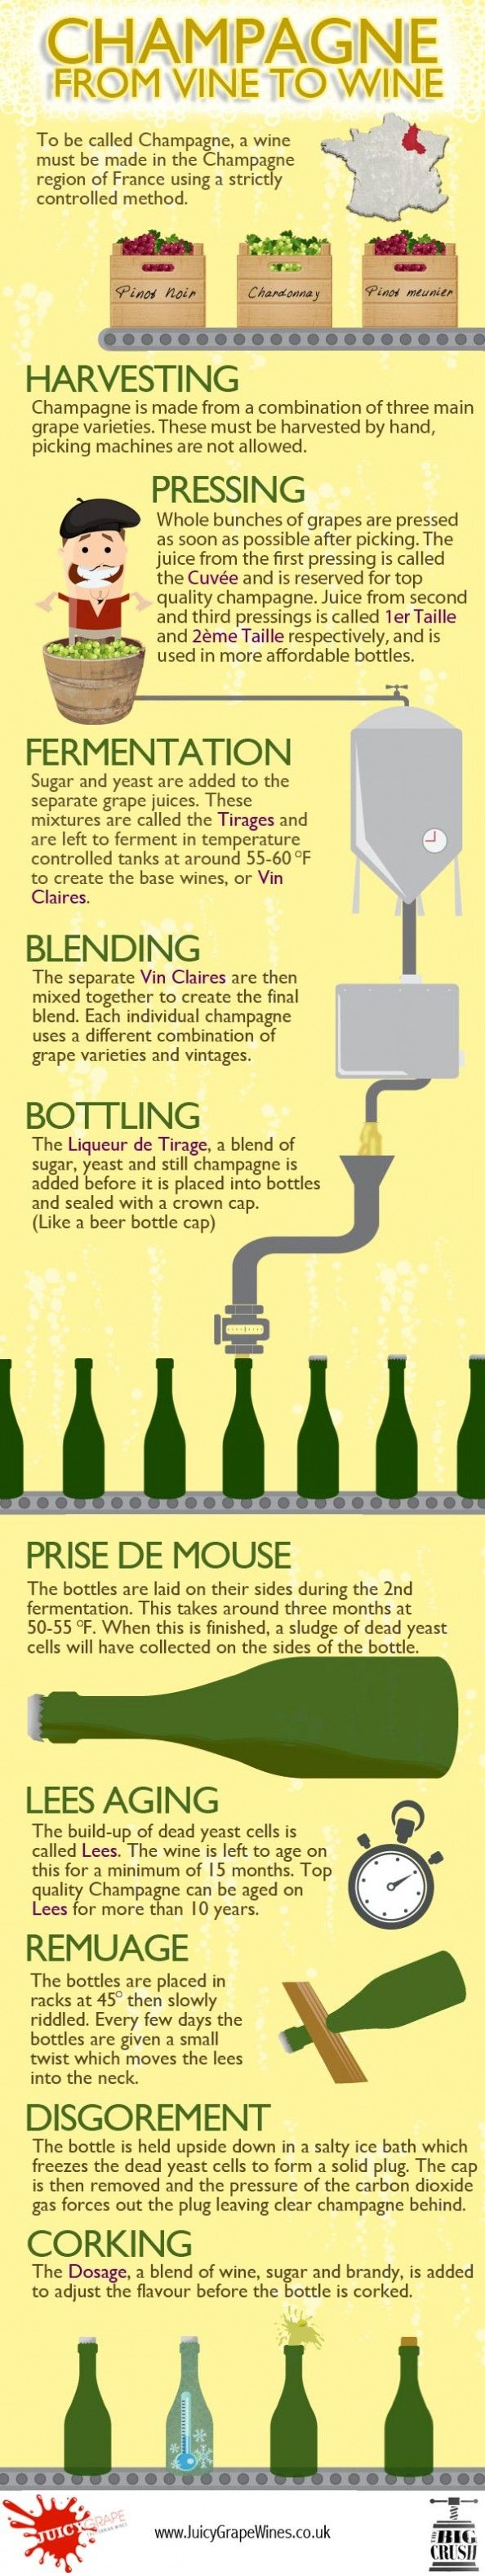 Champagne – From Vine To Wine | #infographics repinned by @Piktochart